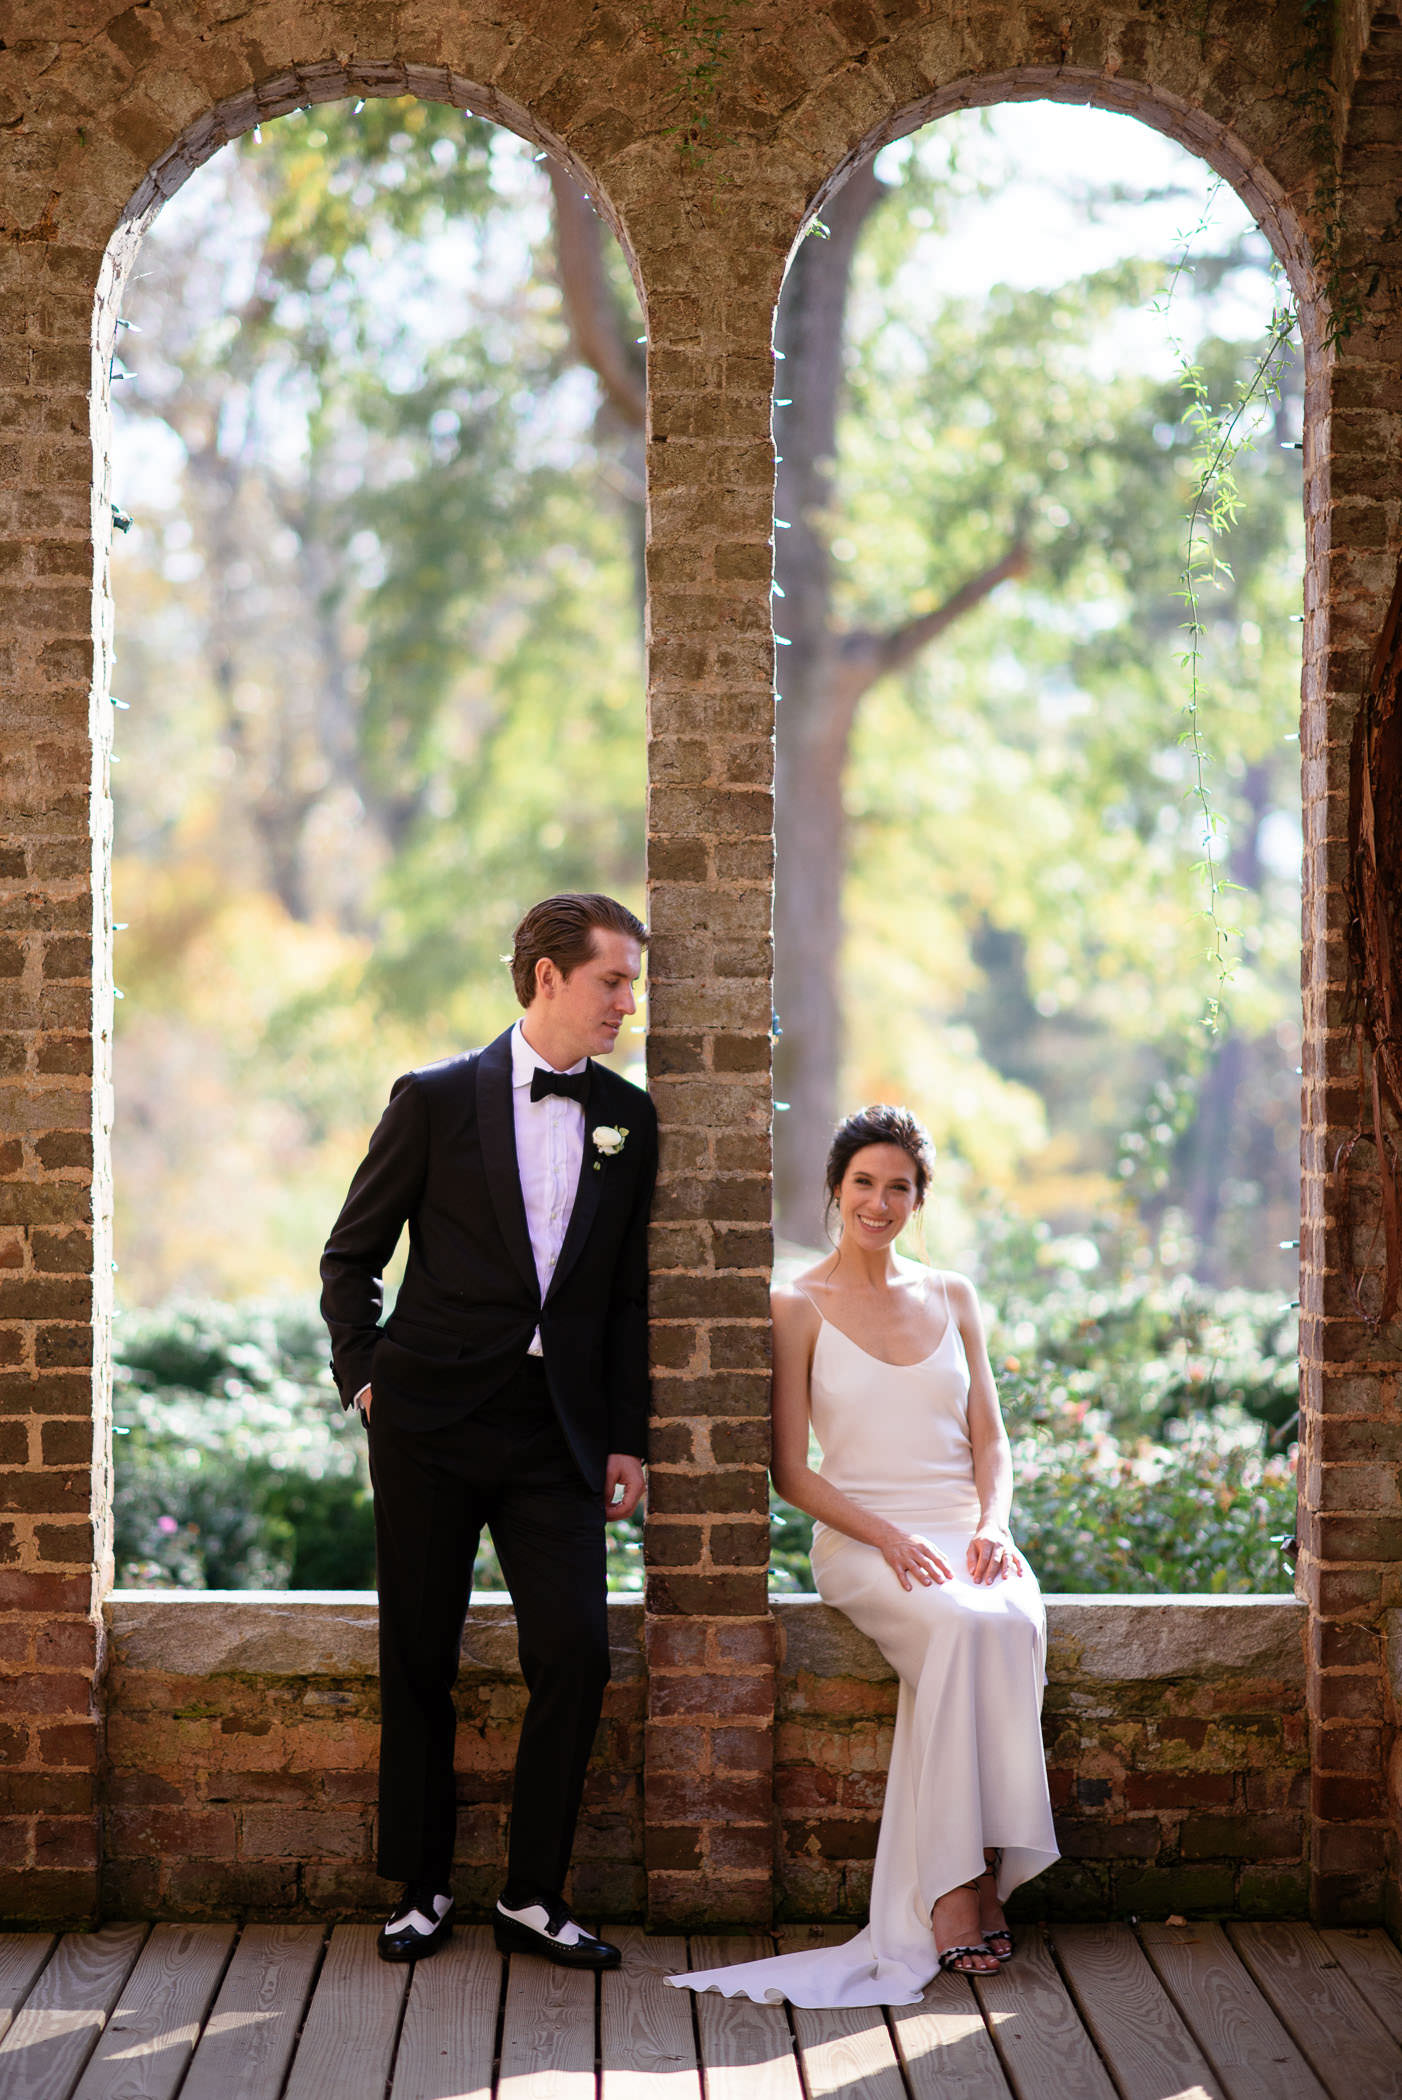 Autumn+Barnsley+Gardens+Wedding+Atlanta+Georgia_17.jpg